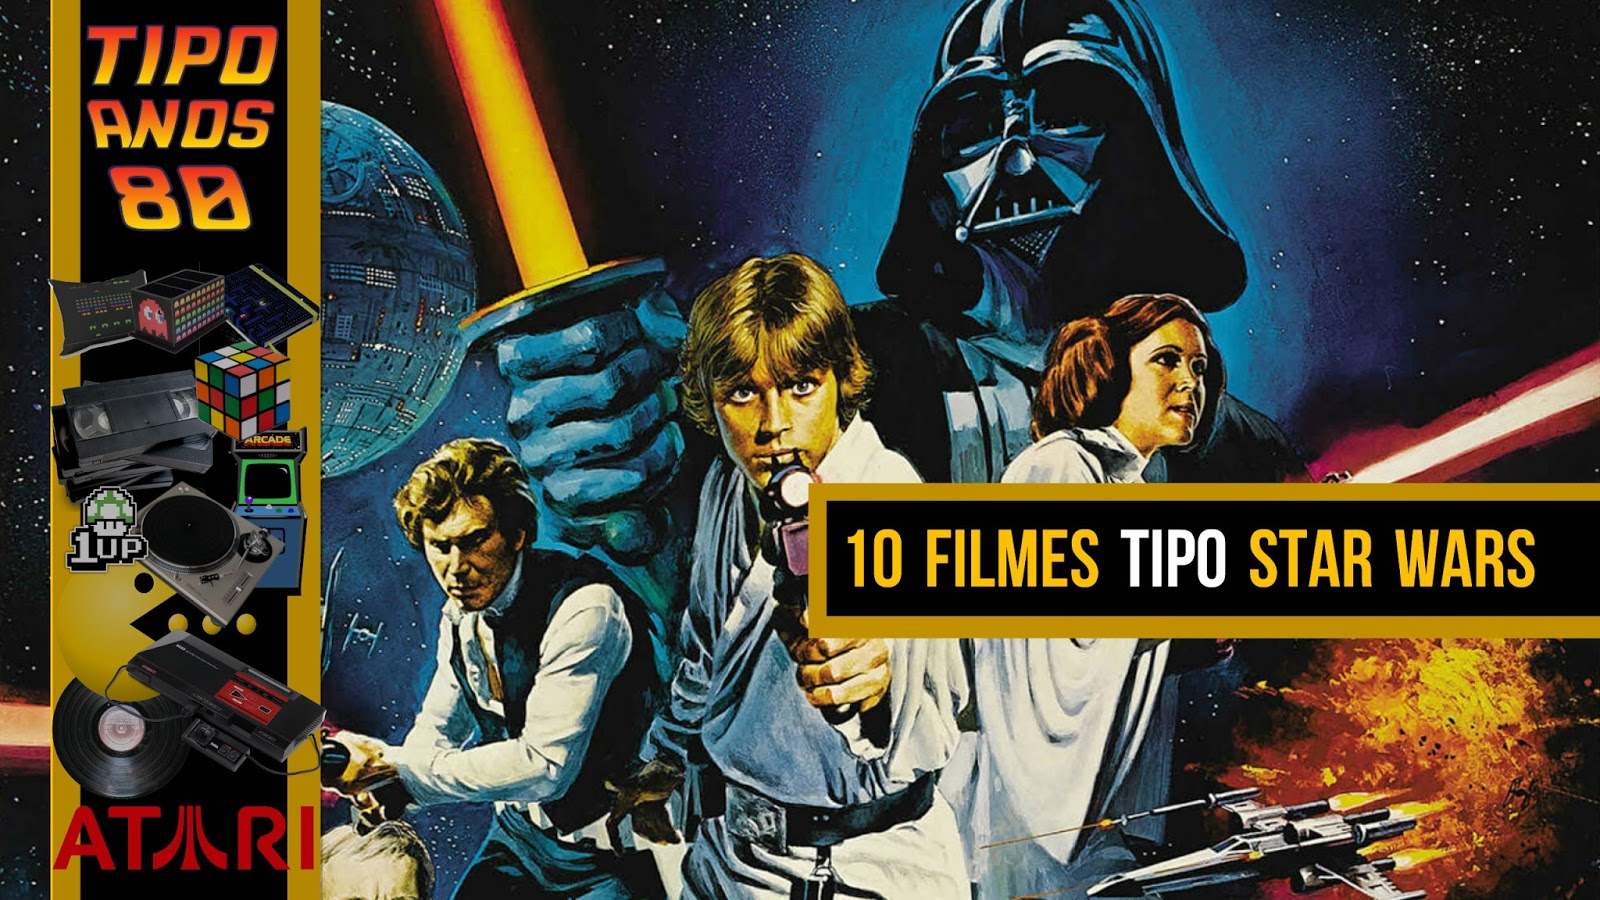 10-filmes-tipo-star-wars